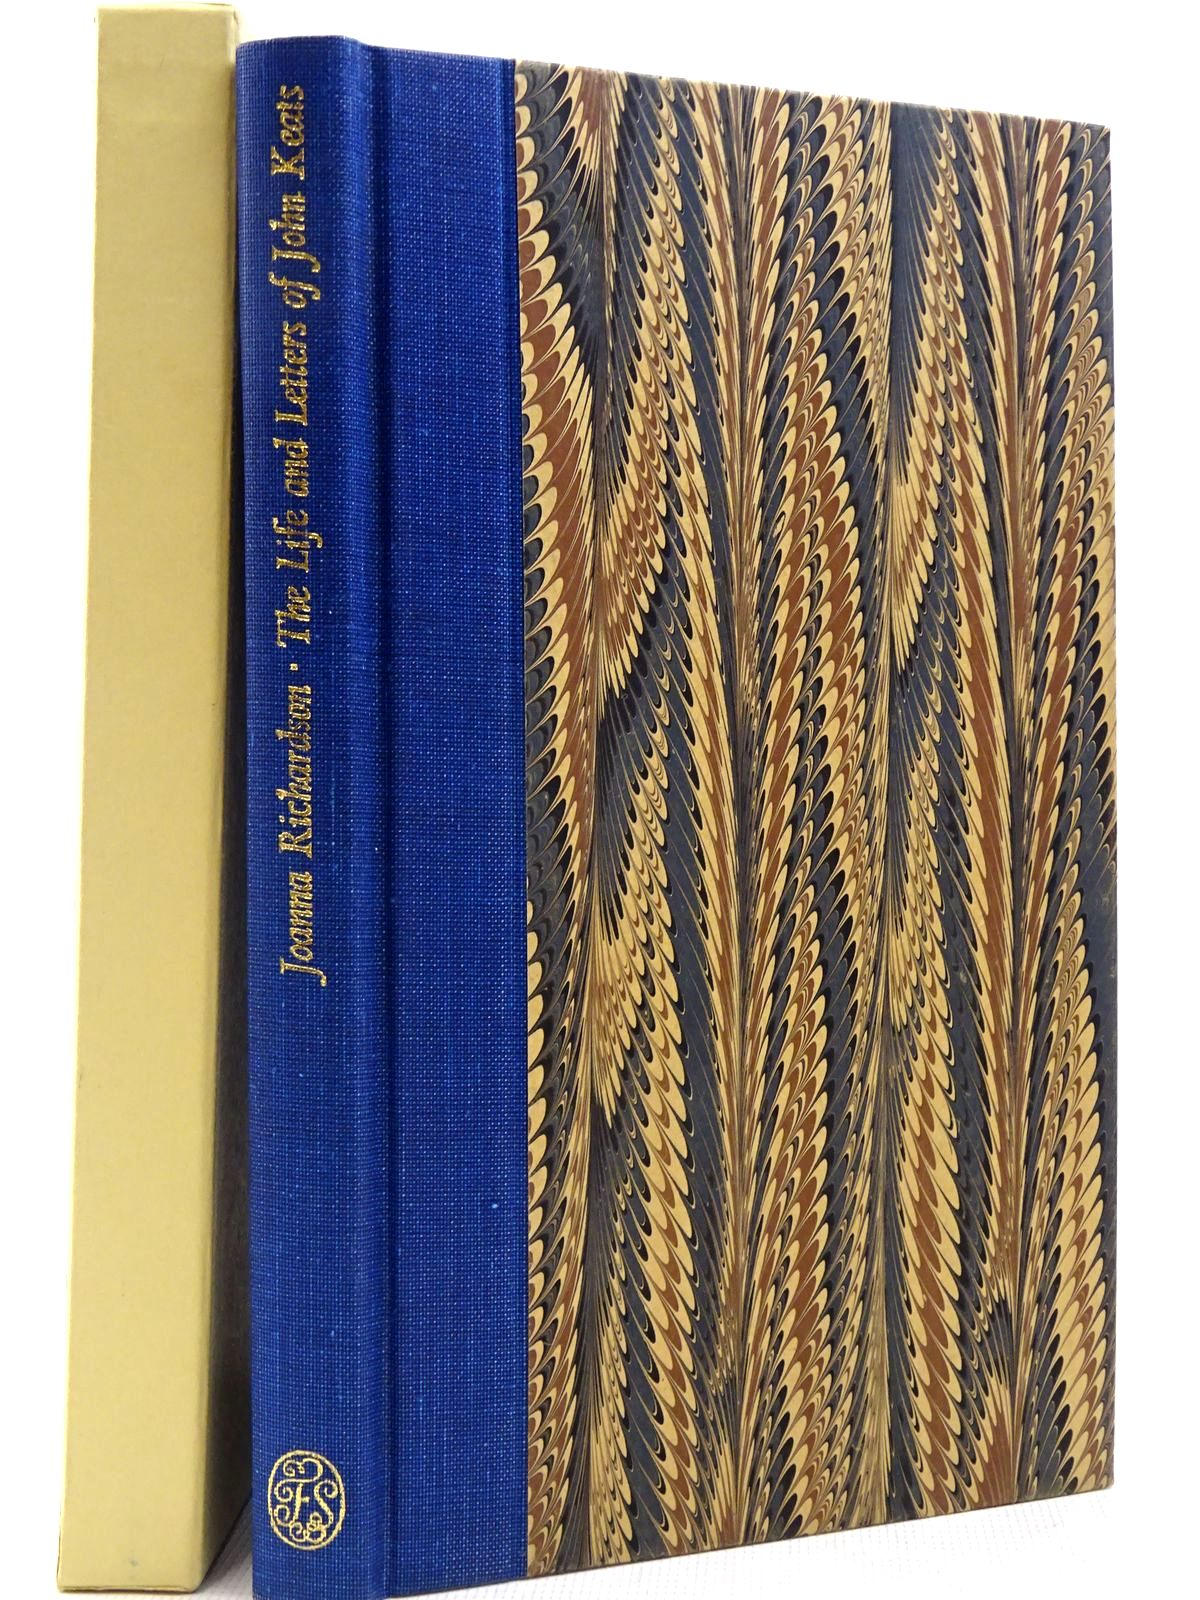 Photo of THE LIFE AND LETTERS OF JOHN KEATS written by Richardson, Joanna<br />Keats, John published by Folio Society (STOCK CODE: 2129373)  for sale by Stella & Rose's Books